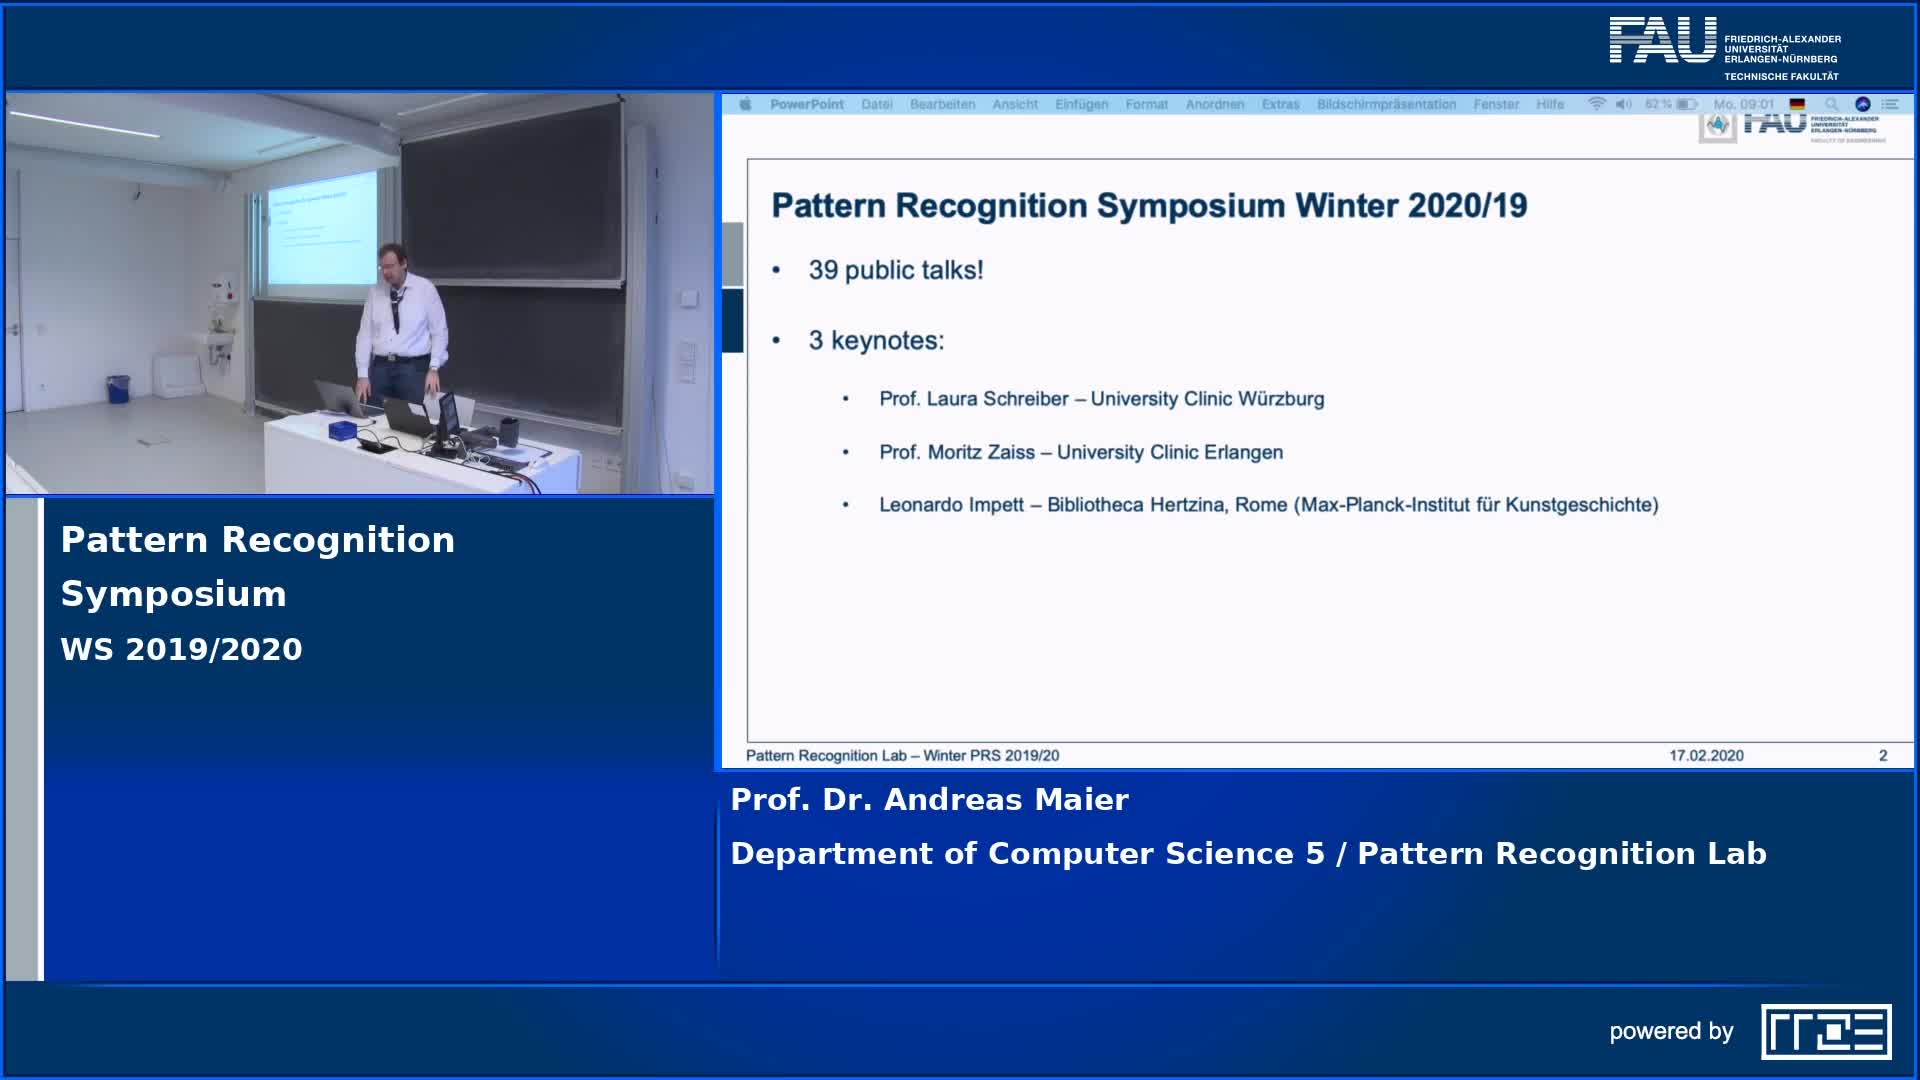 Pattern Recognition Symposium preview image